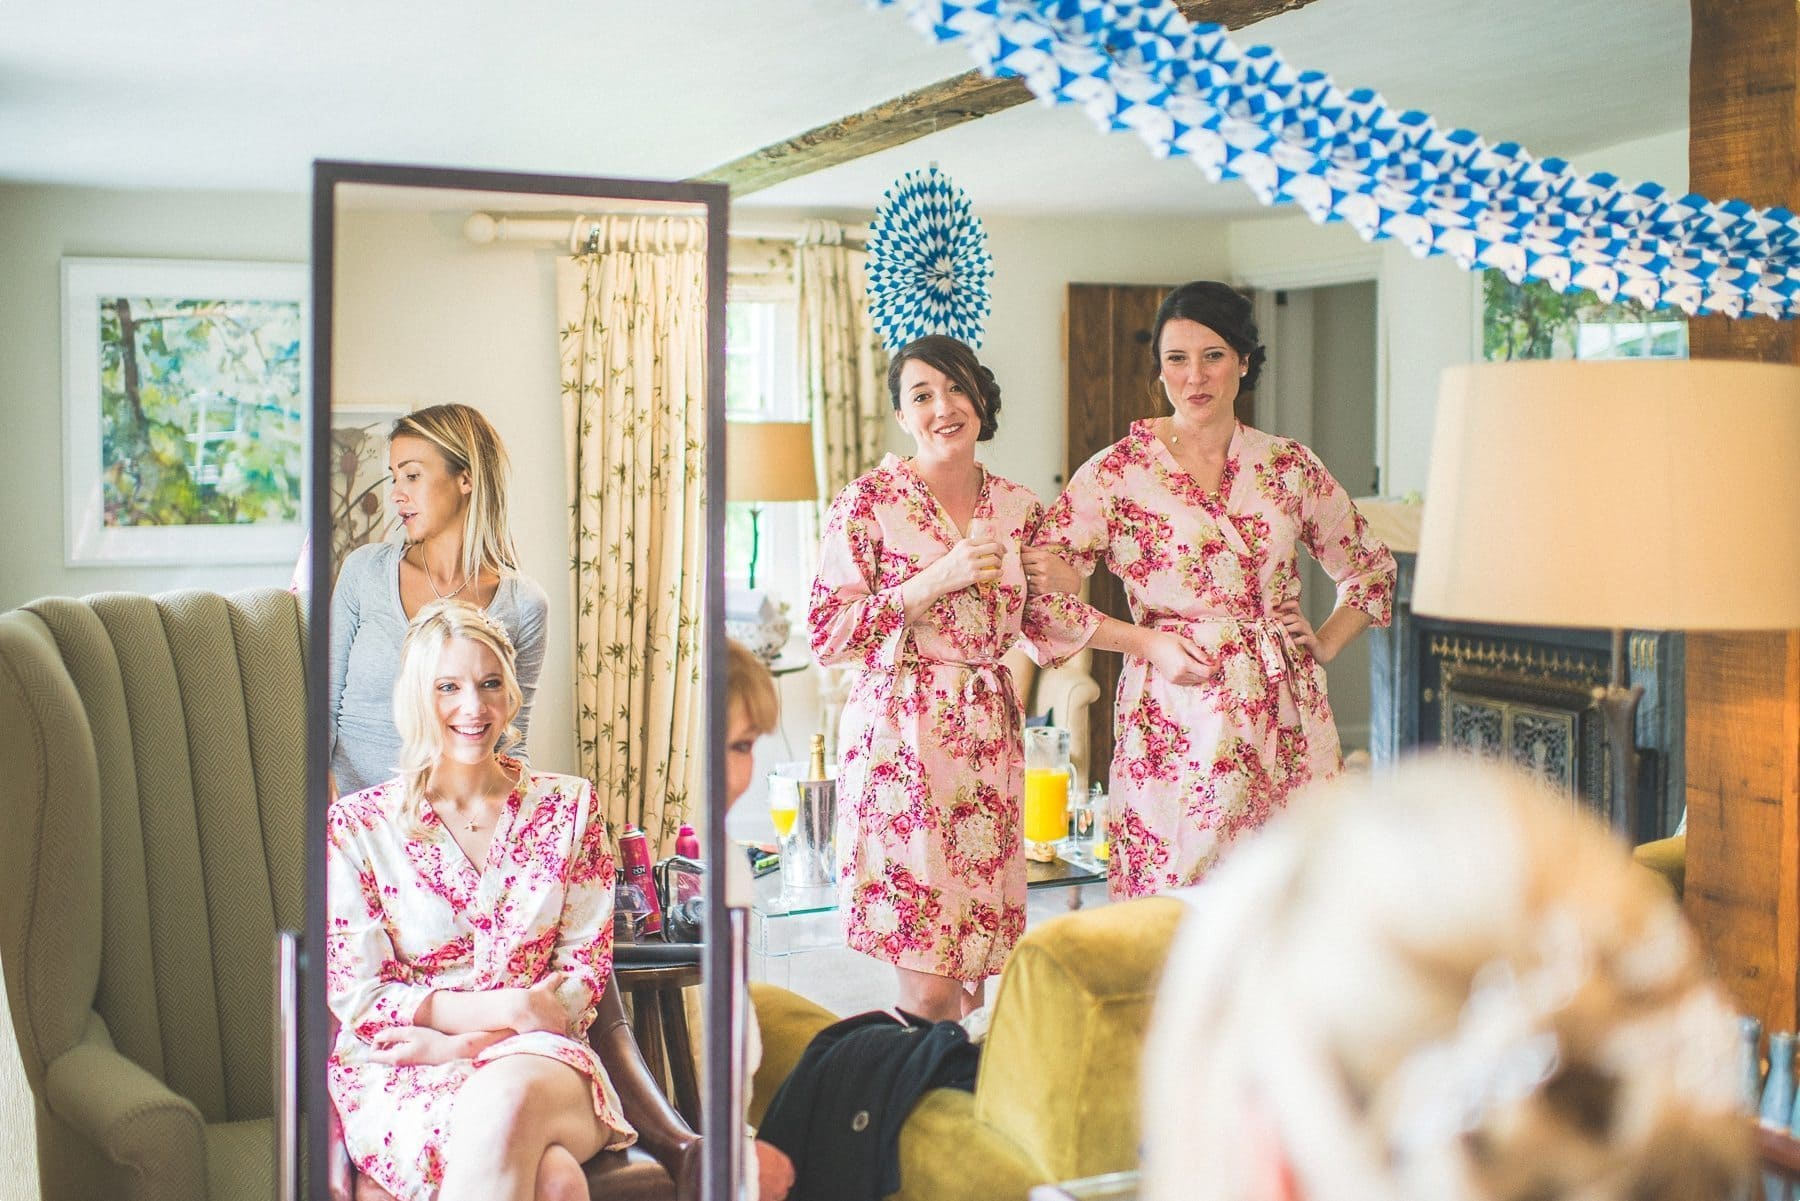 bridesmaids looking at the bride and the bride's reflection looking at them at the dower house at coworth park barn